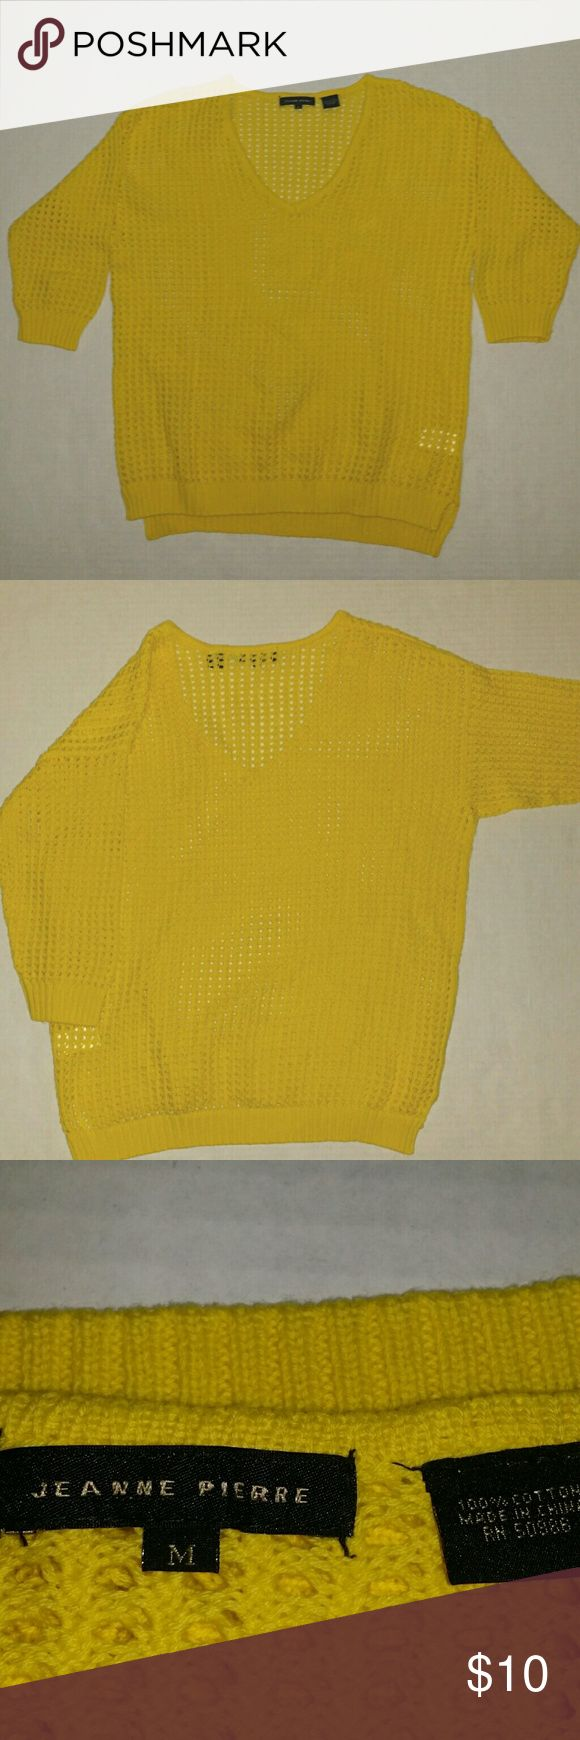 Jeanne Pierre yellow crochet top Soft 100% cotton. Can be used over swim top for a day at the beach. Casual and fun. Yellow tones are on trend right now. Jeanne Pierre  Swim Coverups